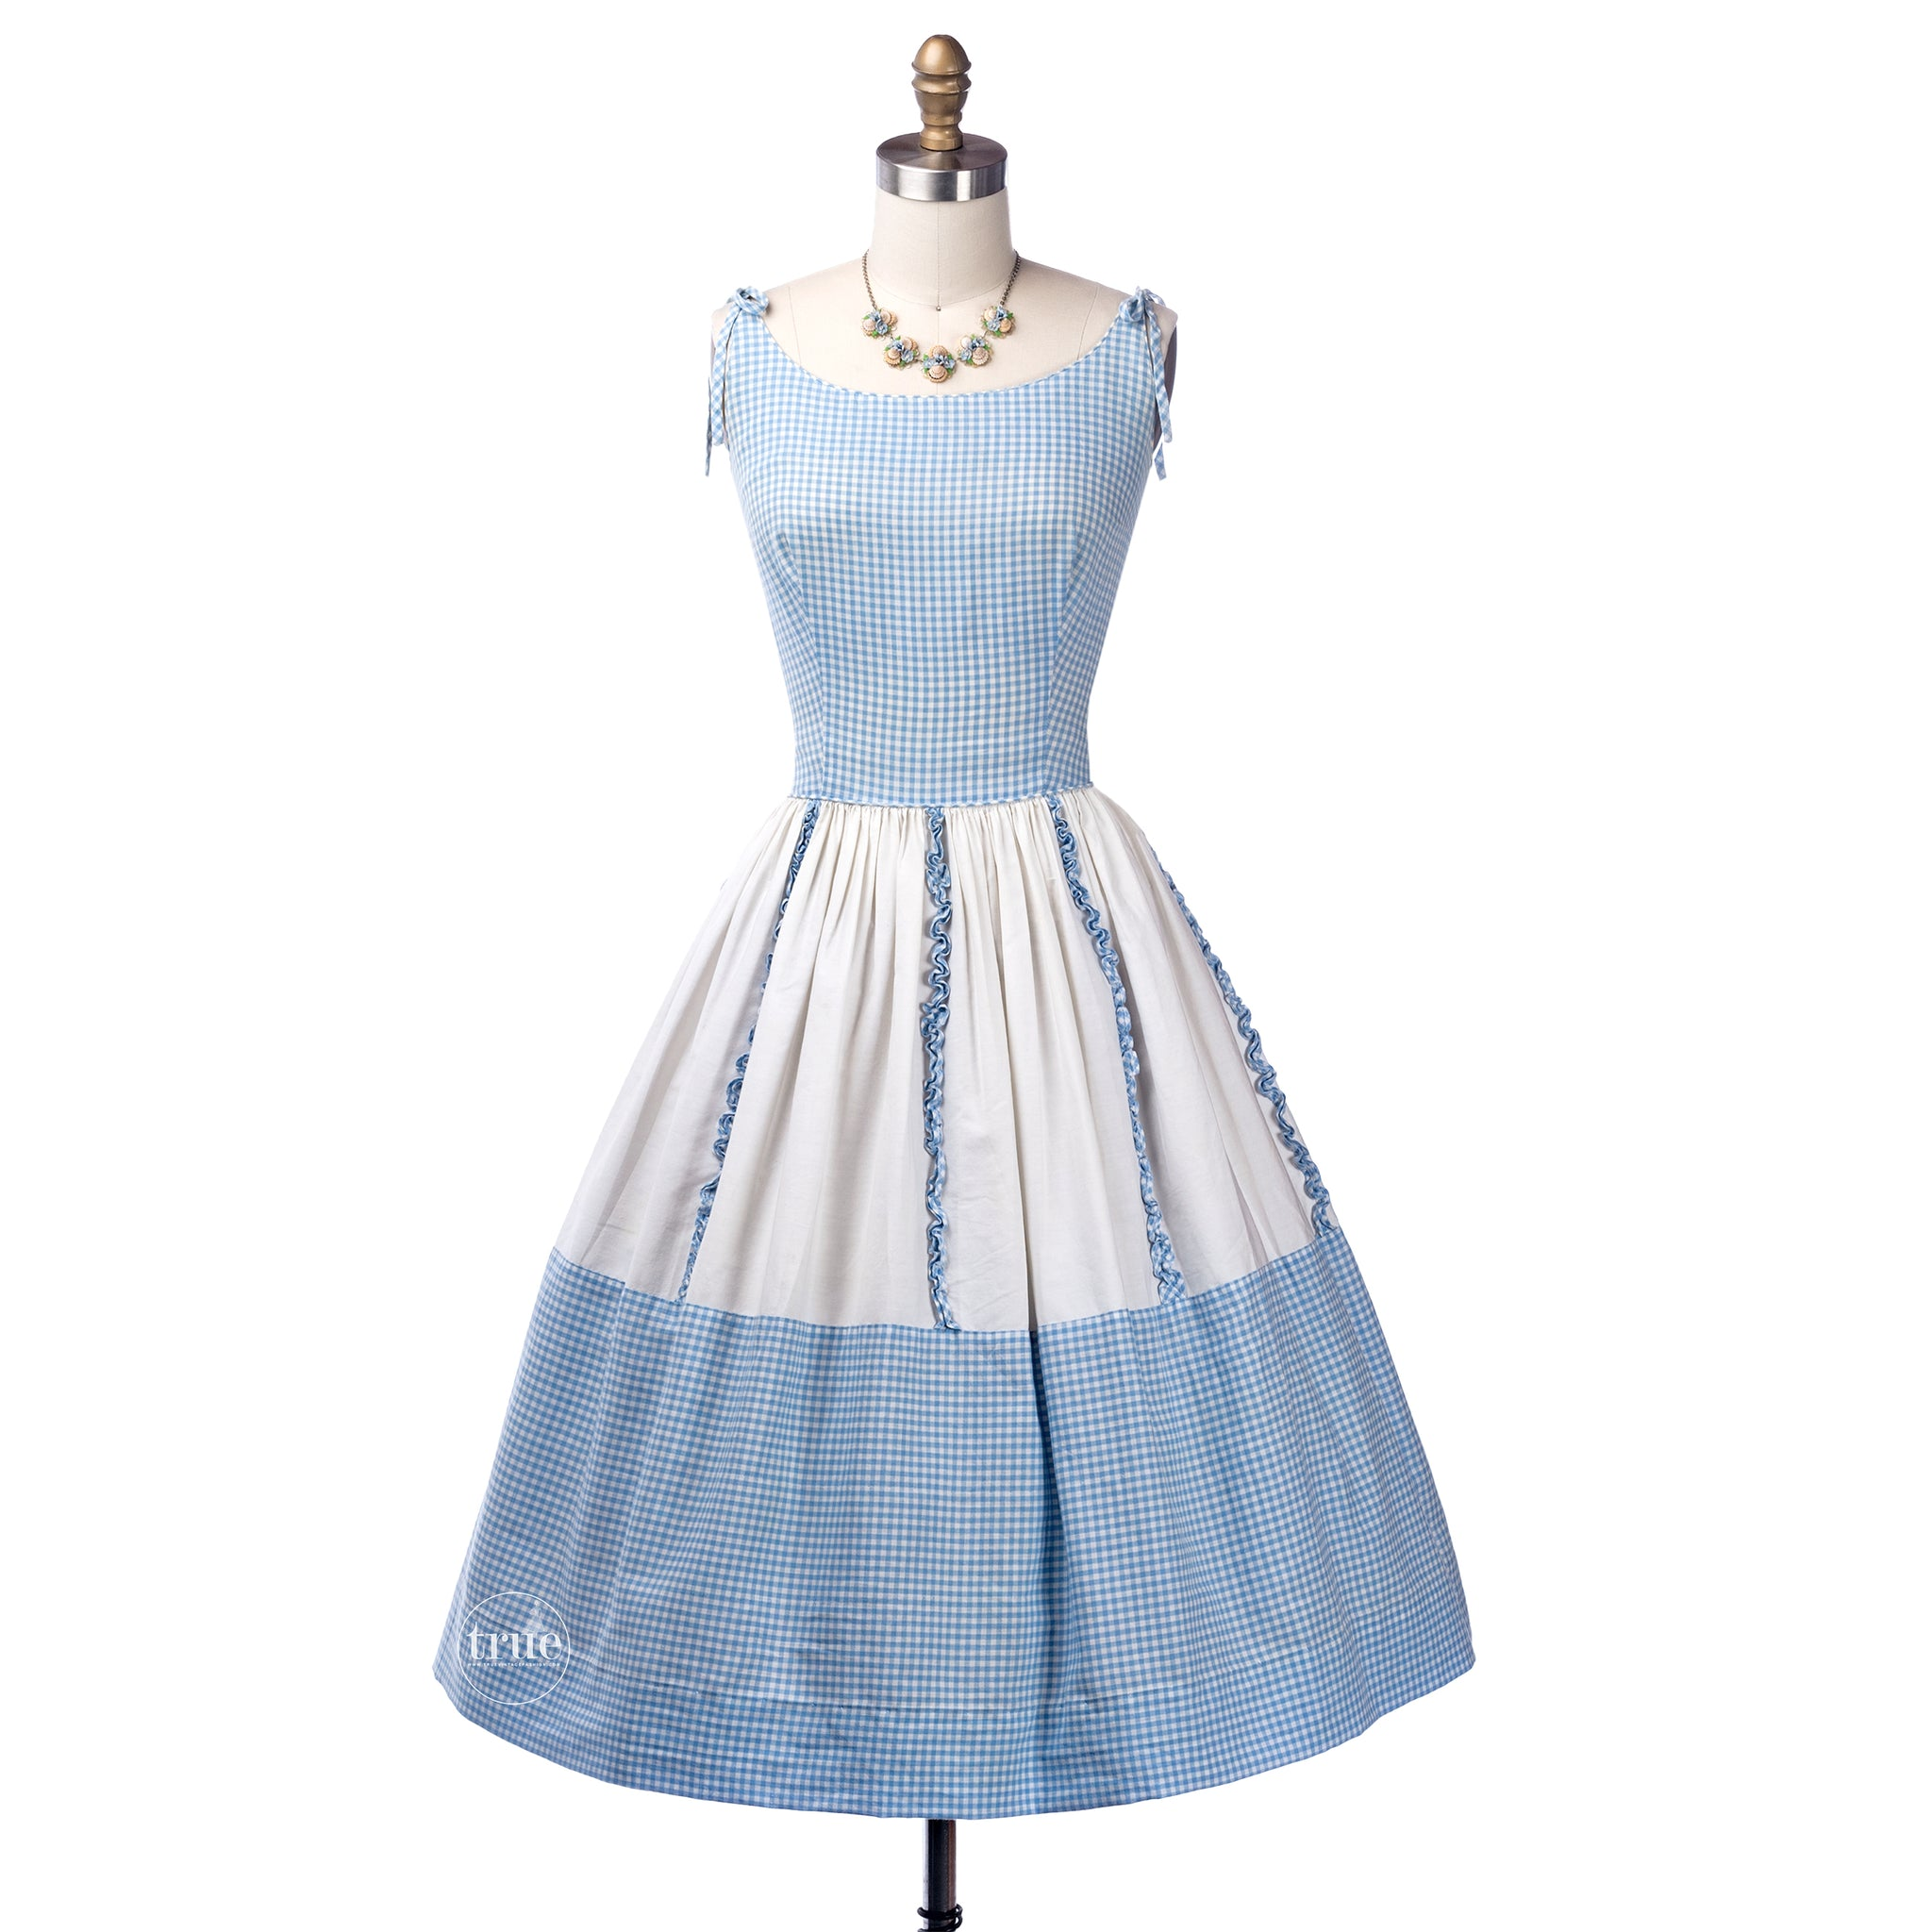 vintage 1950's dress ...so very brigitte bardot MarTex Original blue gingham full skirt sun dress